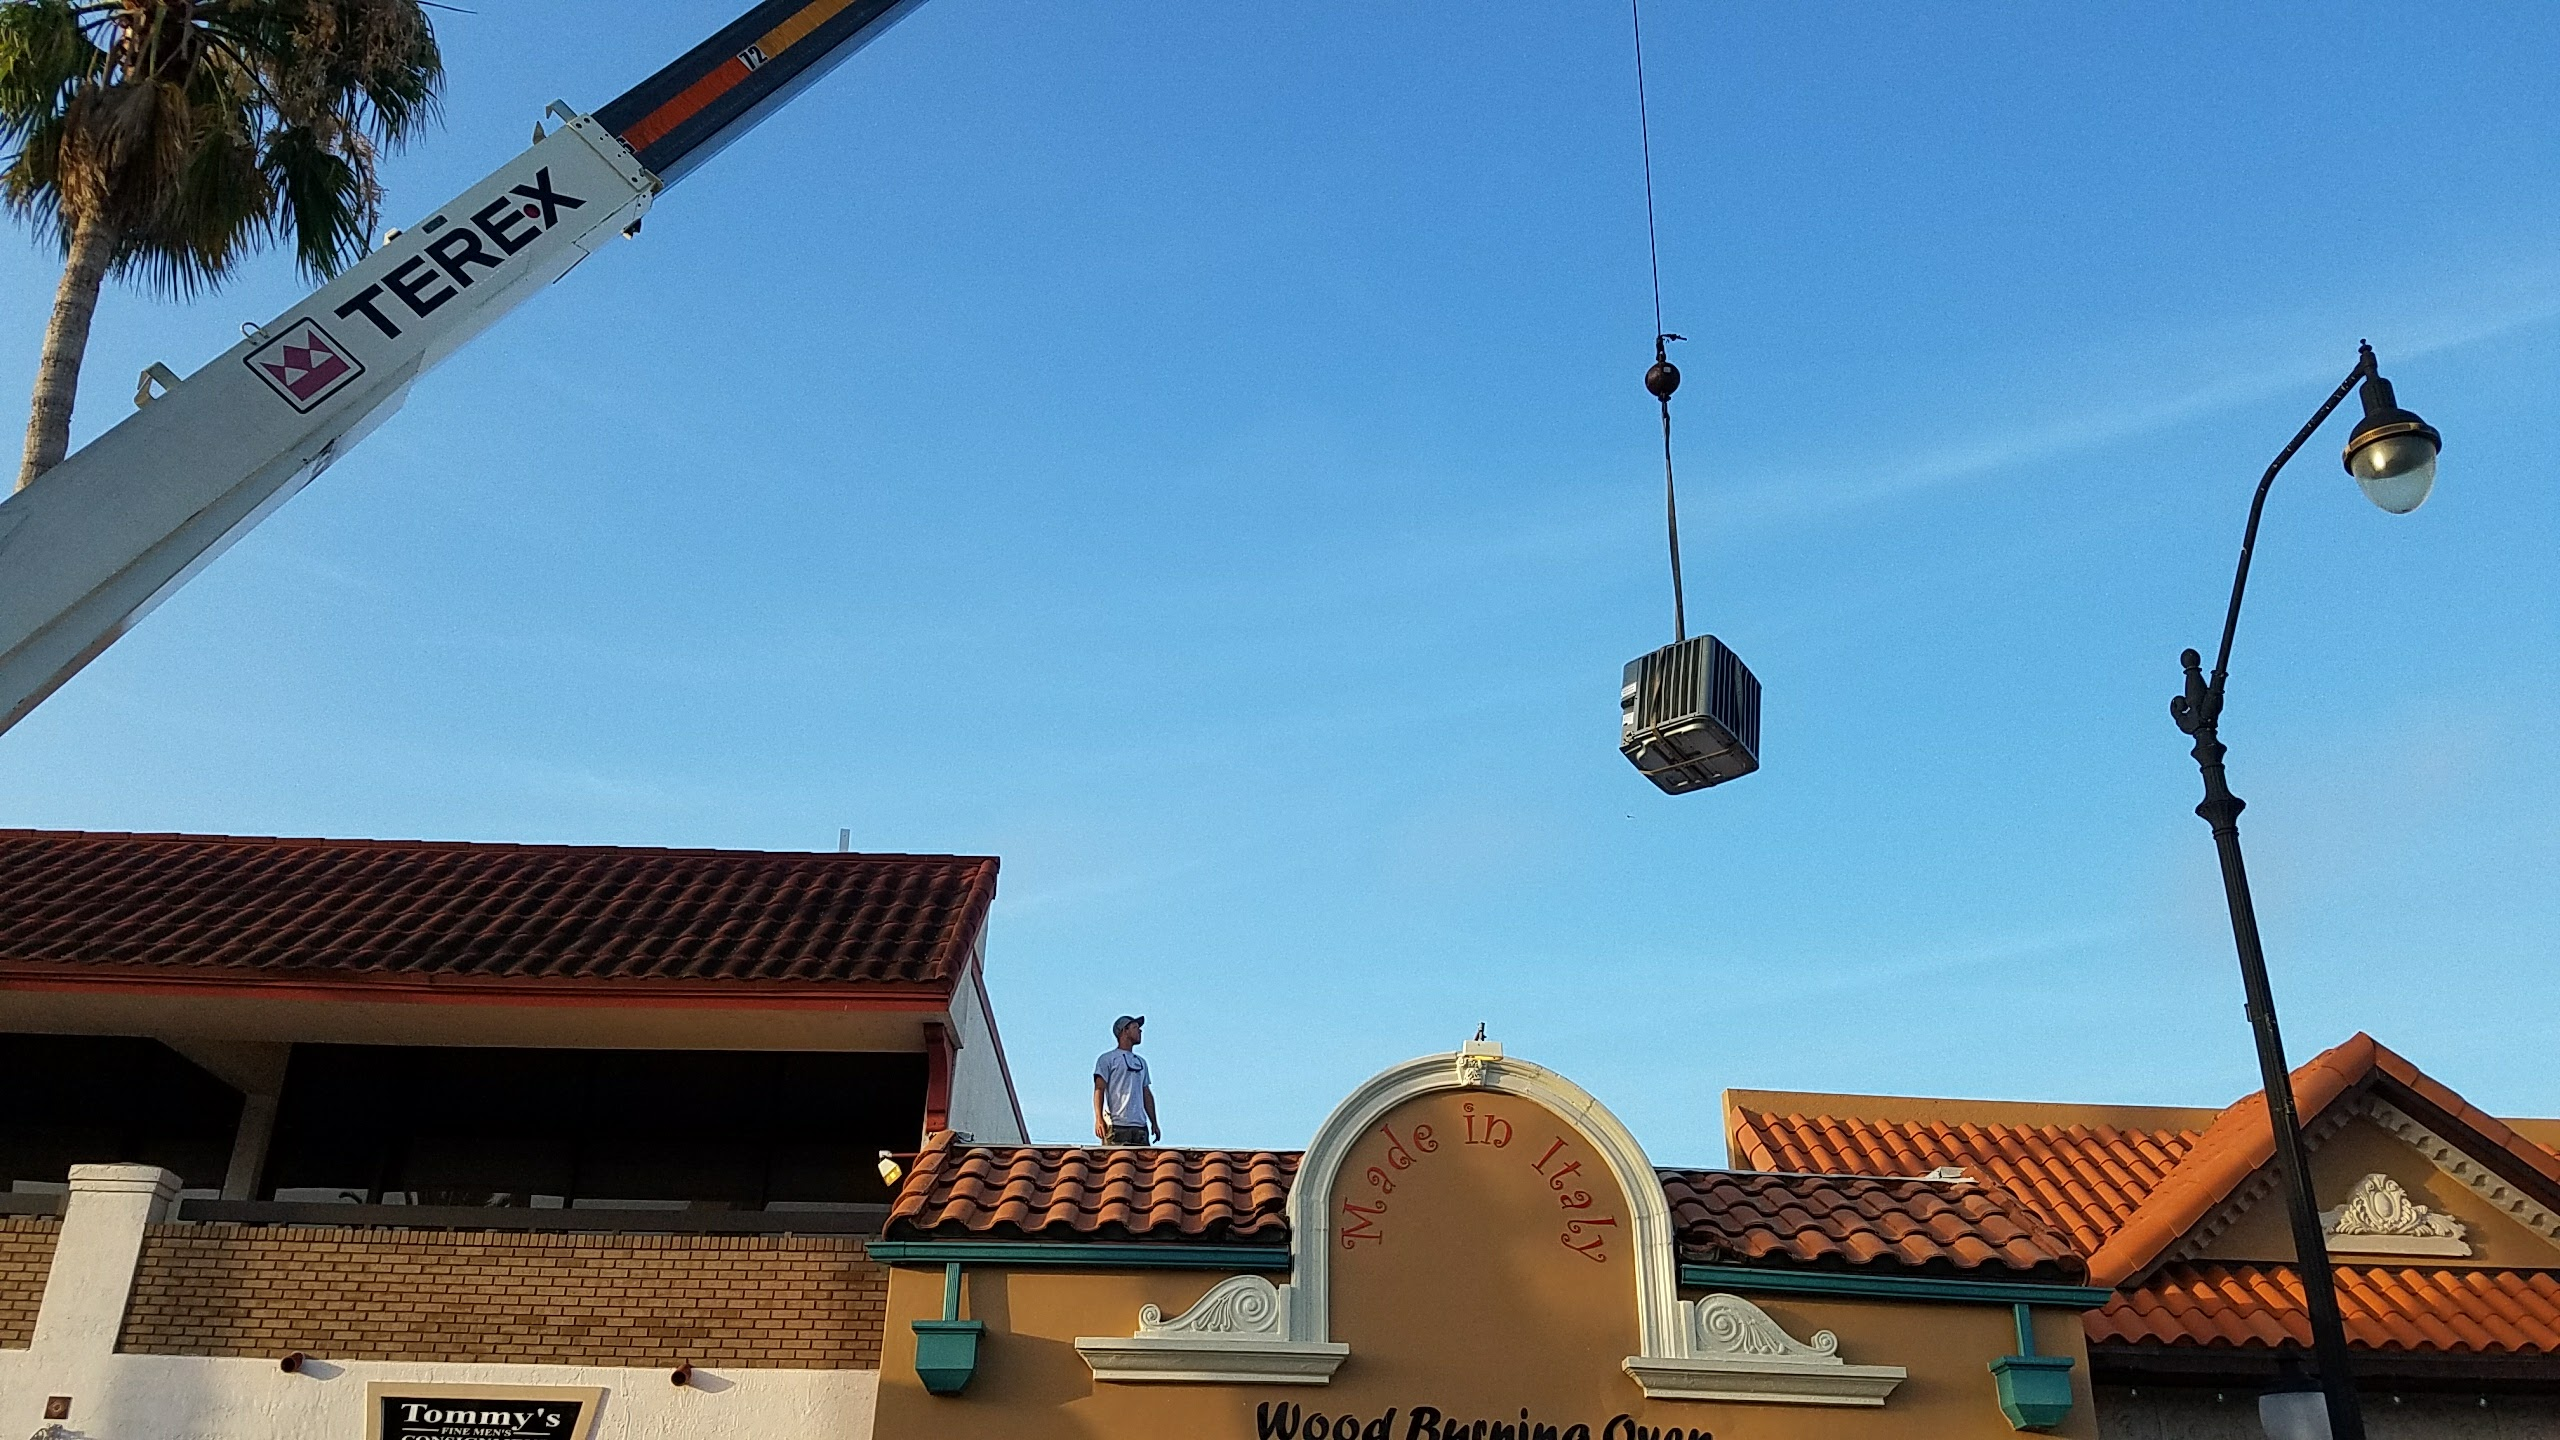 Air Conditioning Replacement Made in Italy Venice, FL